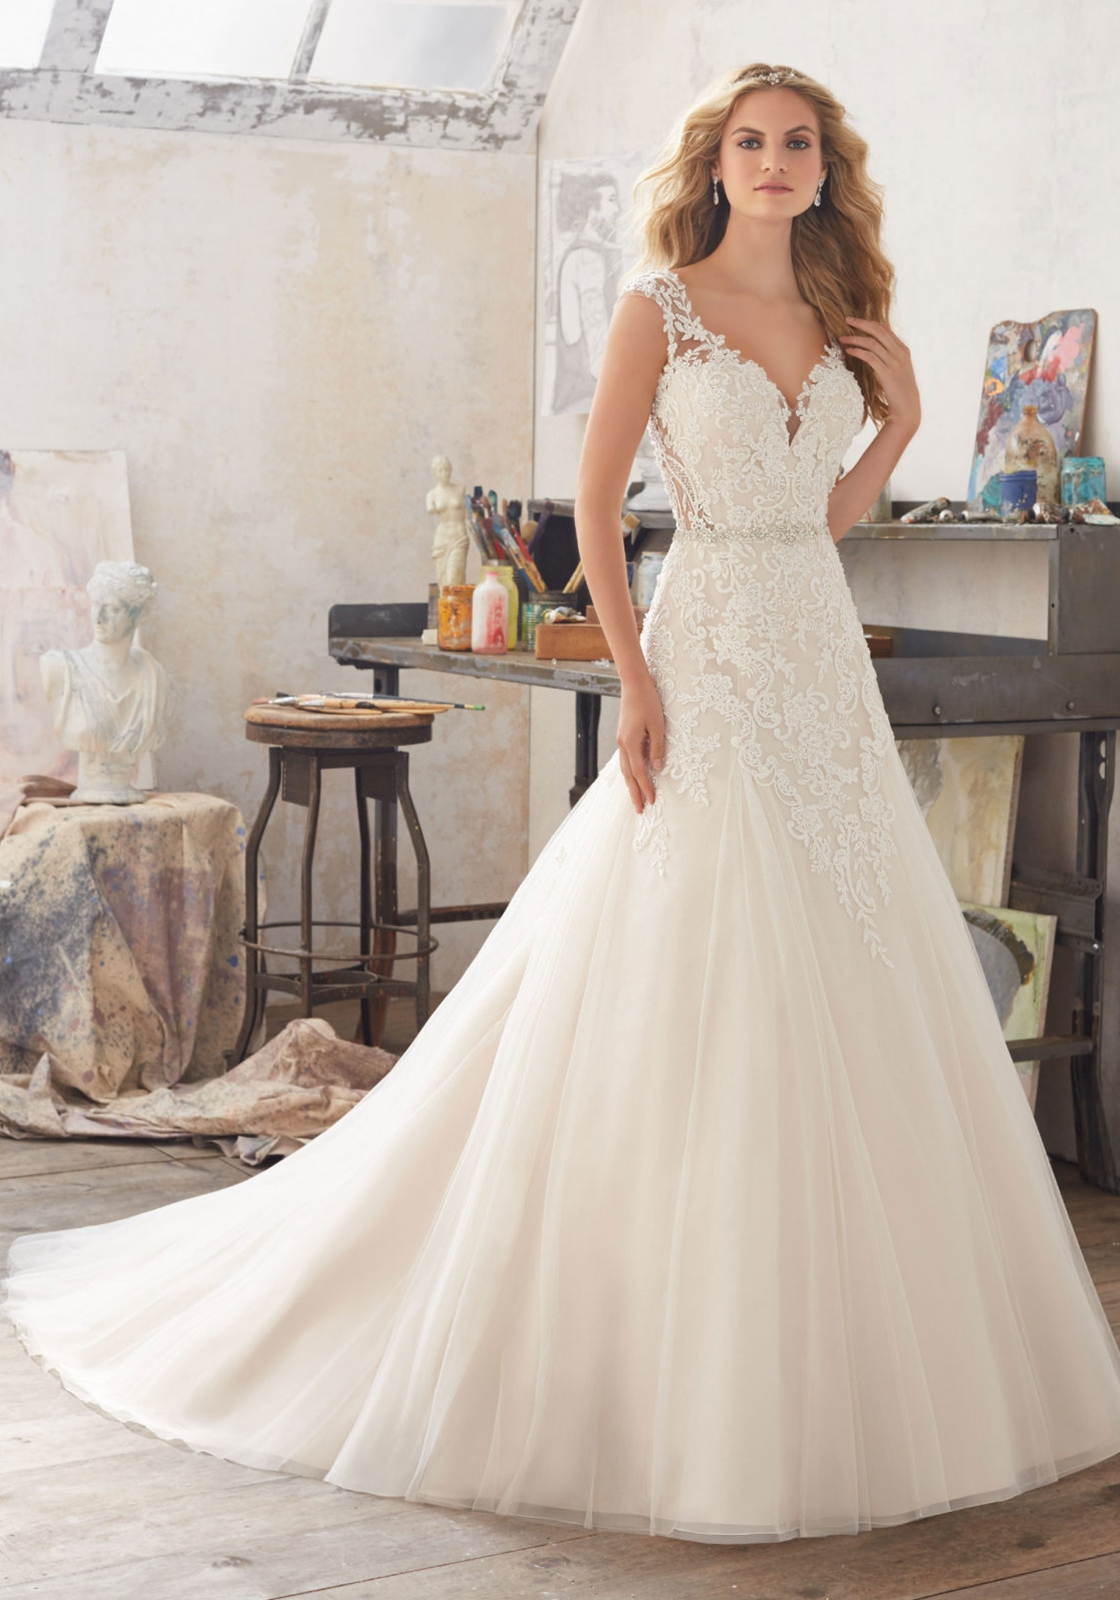 66876eec639 Latest Exquisite Wedding Dress of Bride Open Back Design with Beaded Lace  Appliques Court Train Item NO  ML055